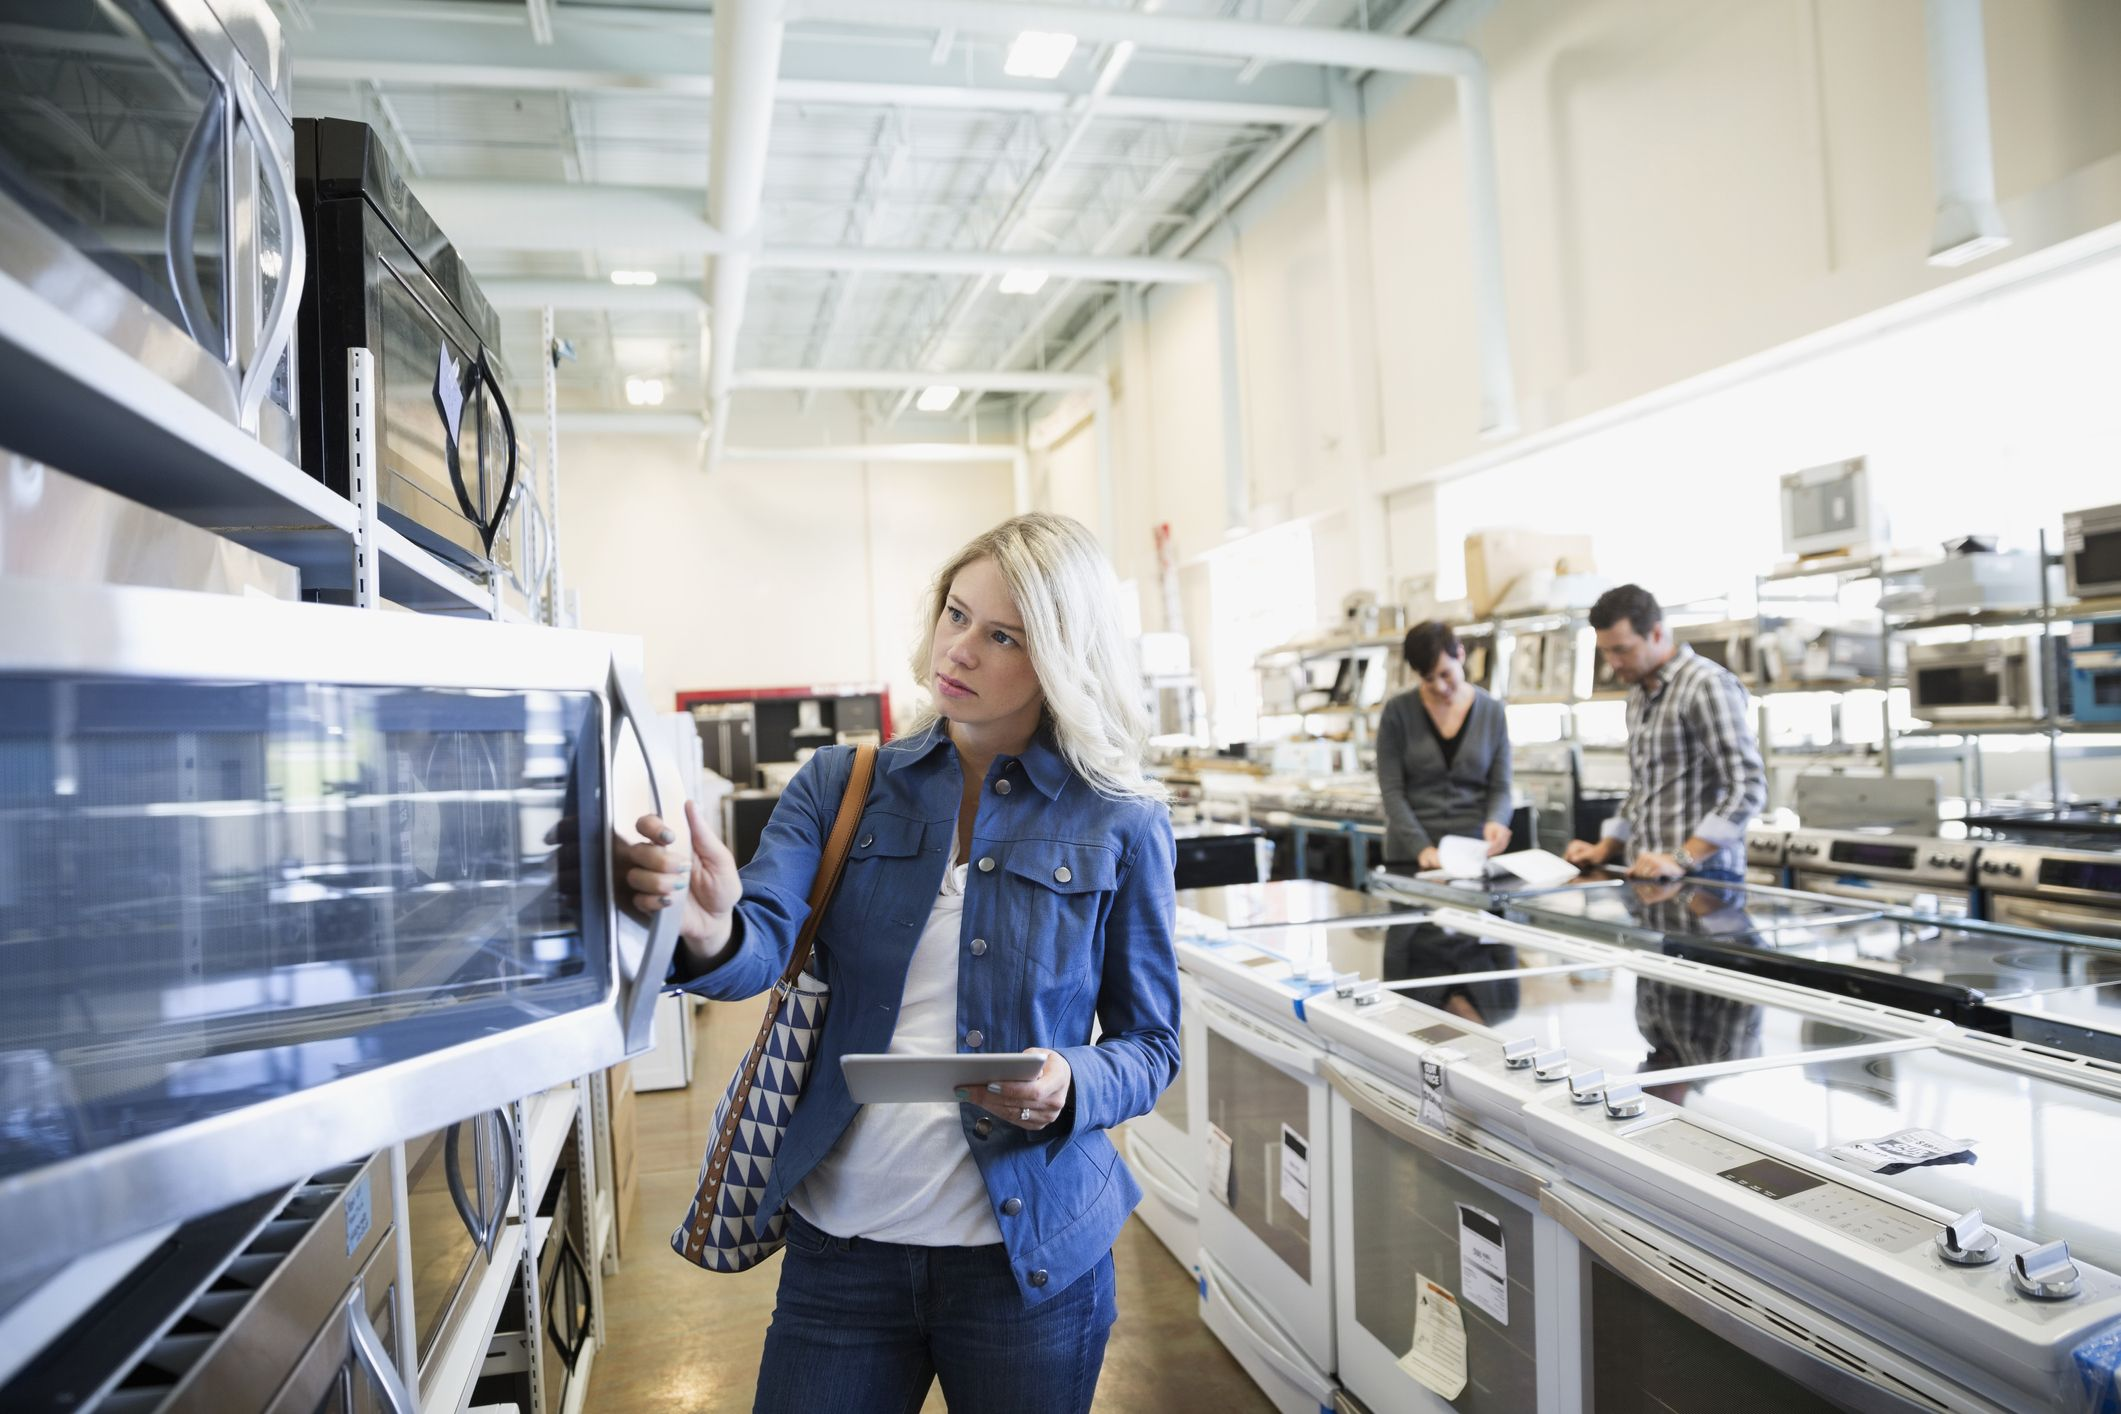 Best Time To Buy Appliances Experts Reveal When To Buy Washers Fridges And More